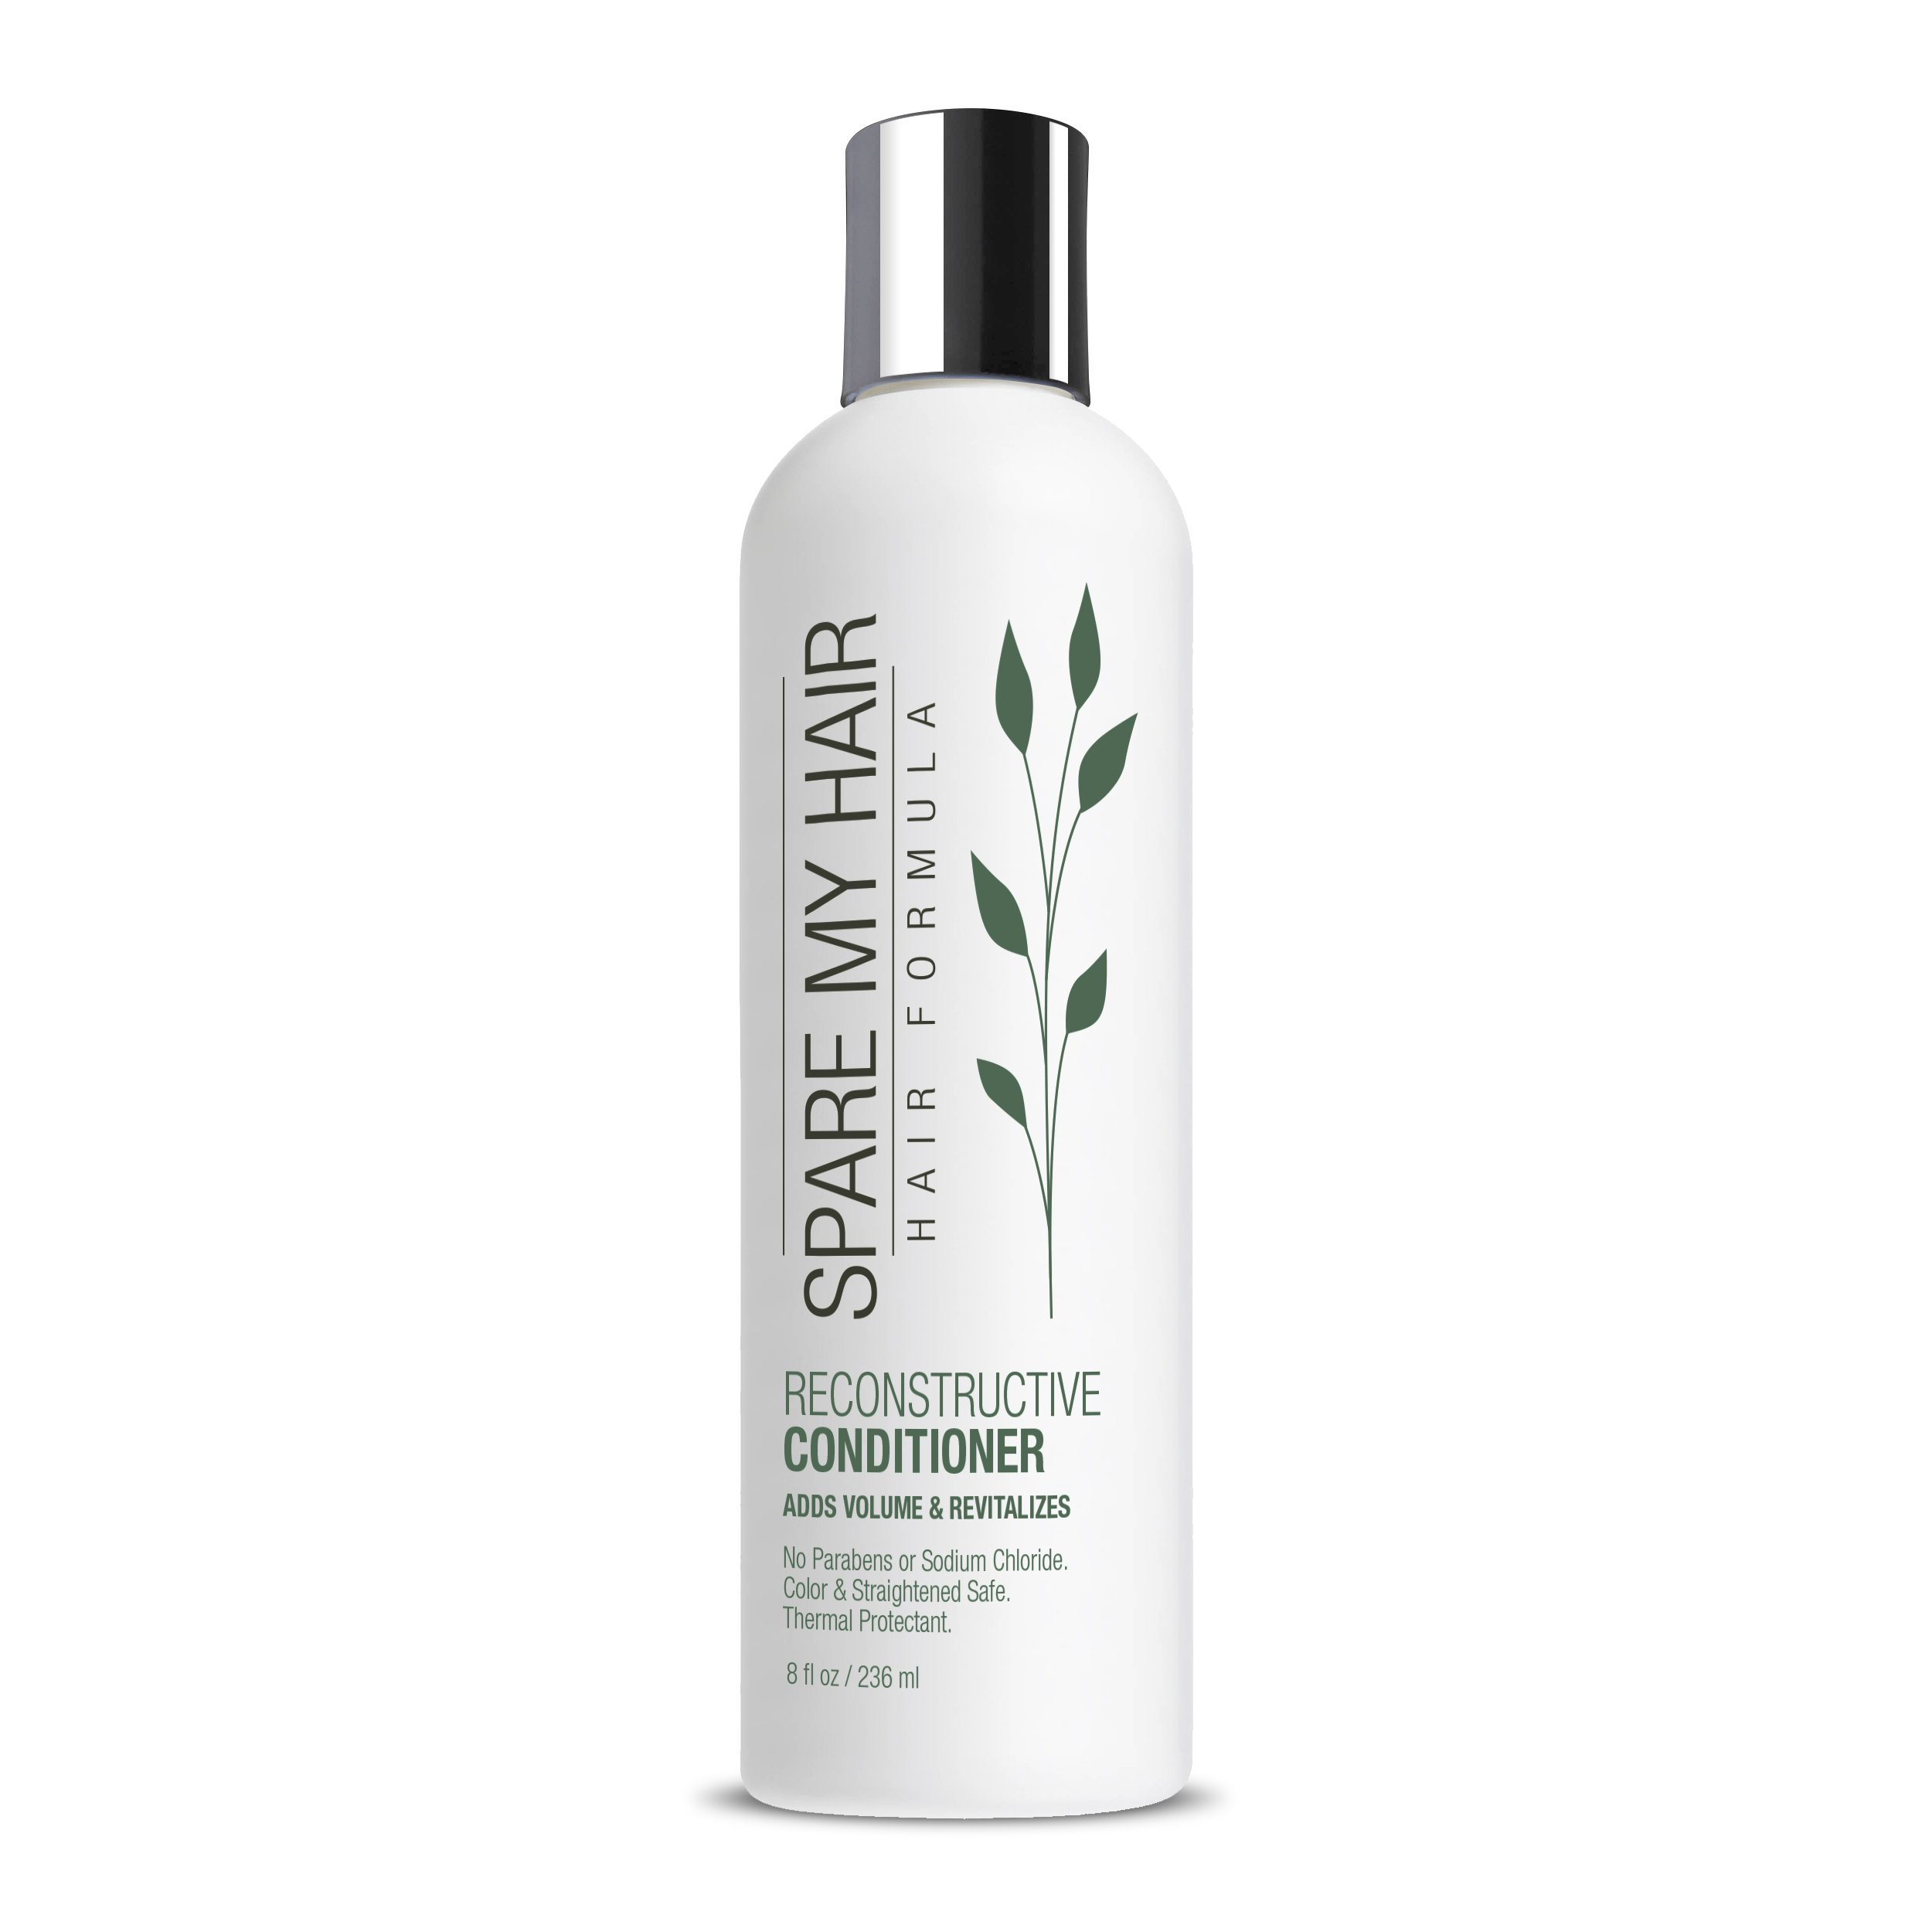 Premium Hair Growth Conditioner with Yucca Extract , Biotin, Multivitamins, Saw Palmetto , Horsetail extracts and Natural Oils.Helps Reduce Hair Loss and Thinning for Both Men and Women>